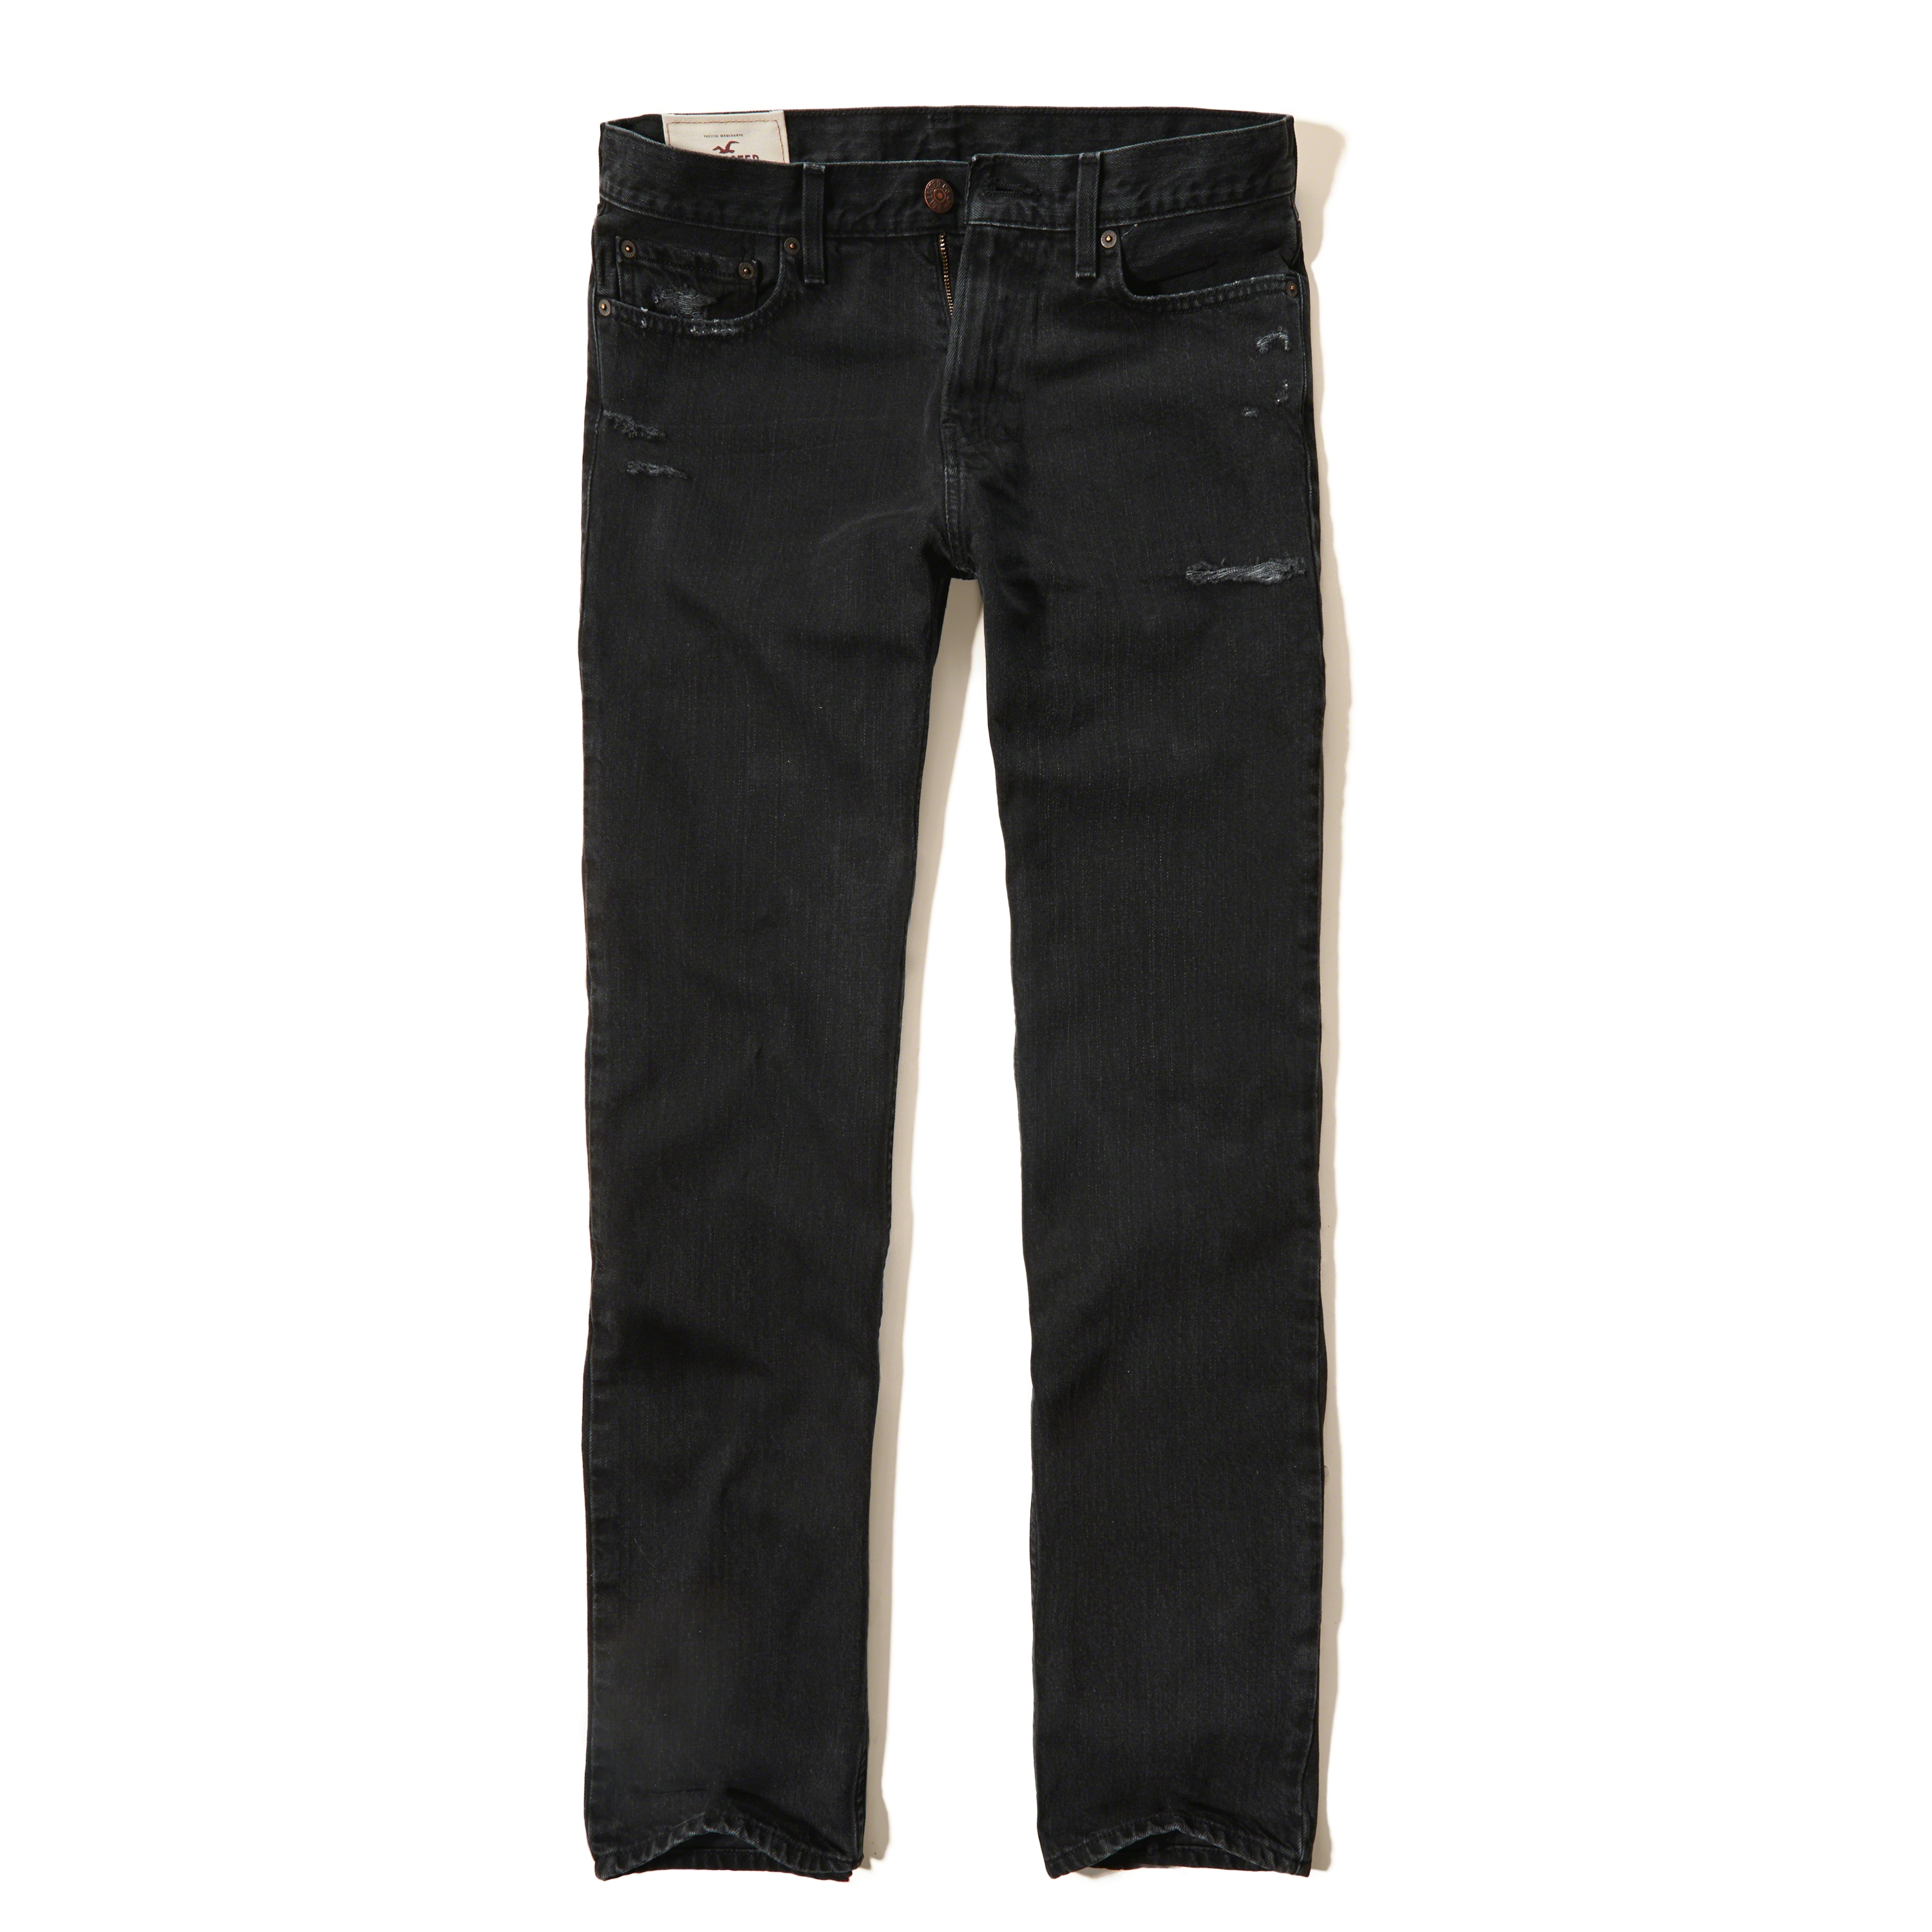 hollister dark jeans for men - photo #23